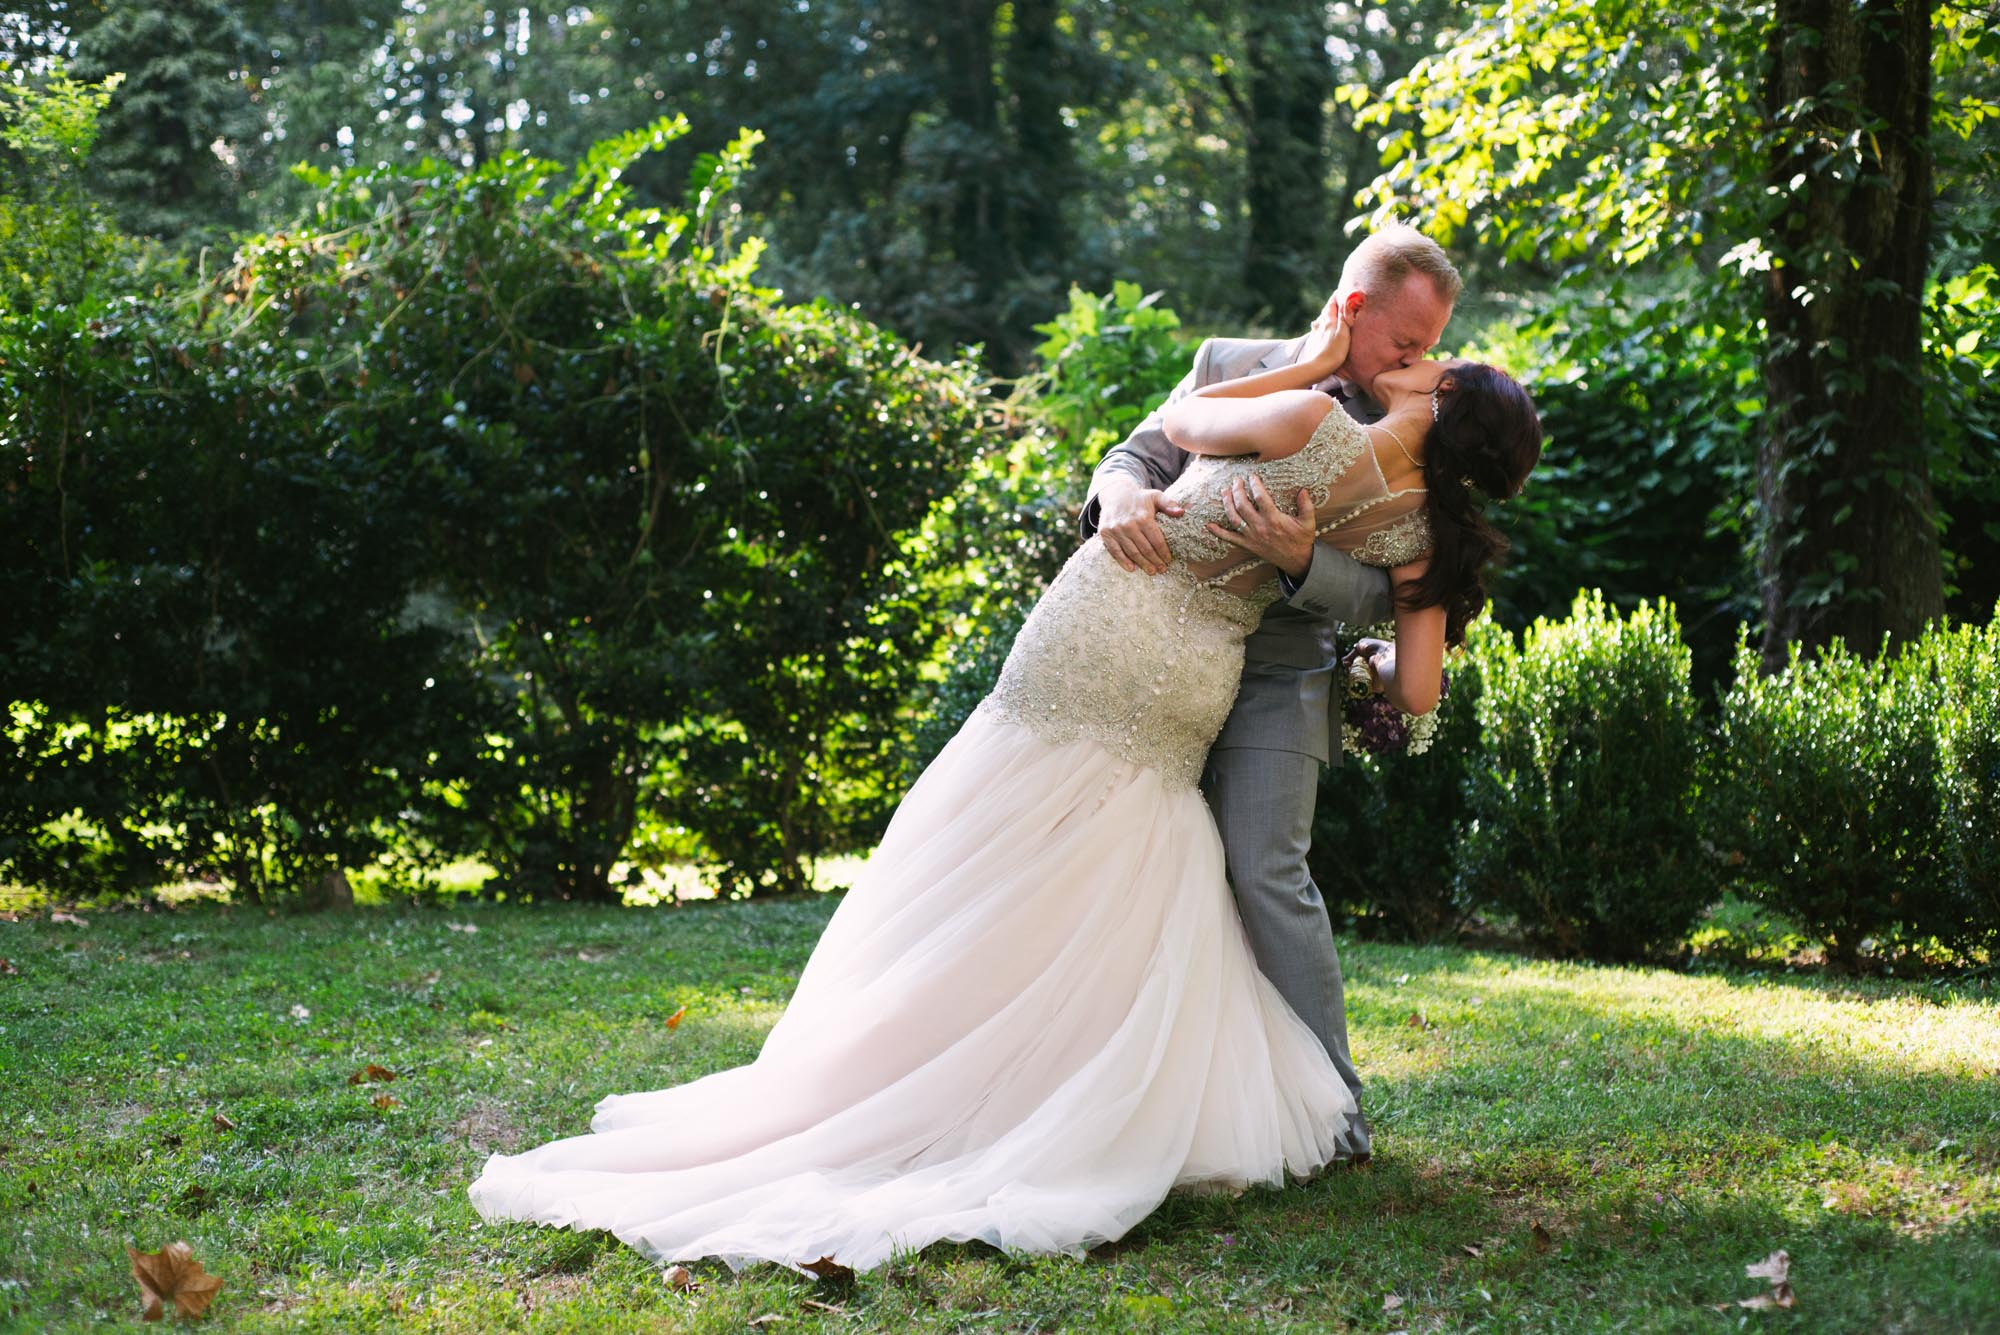 Atlanta; Wedding; Backyard Wedding; Photographer; LeahAndMark & Co.; Buckhead; Fall Wedding; Summer Wedding; Planning